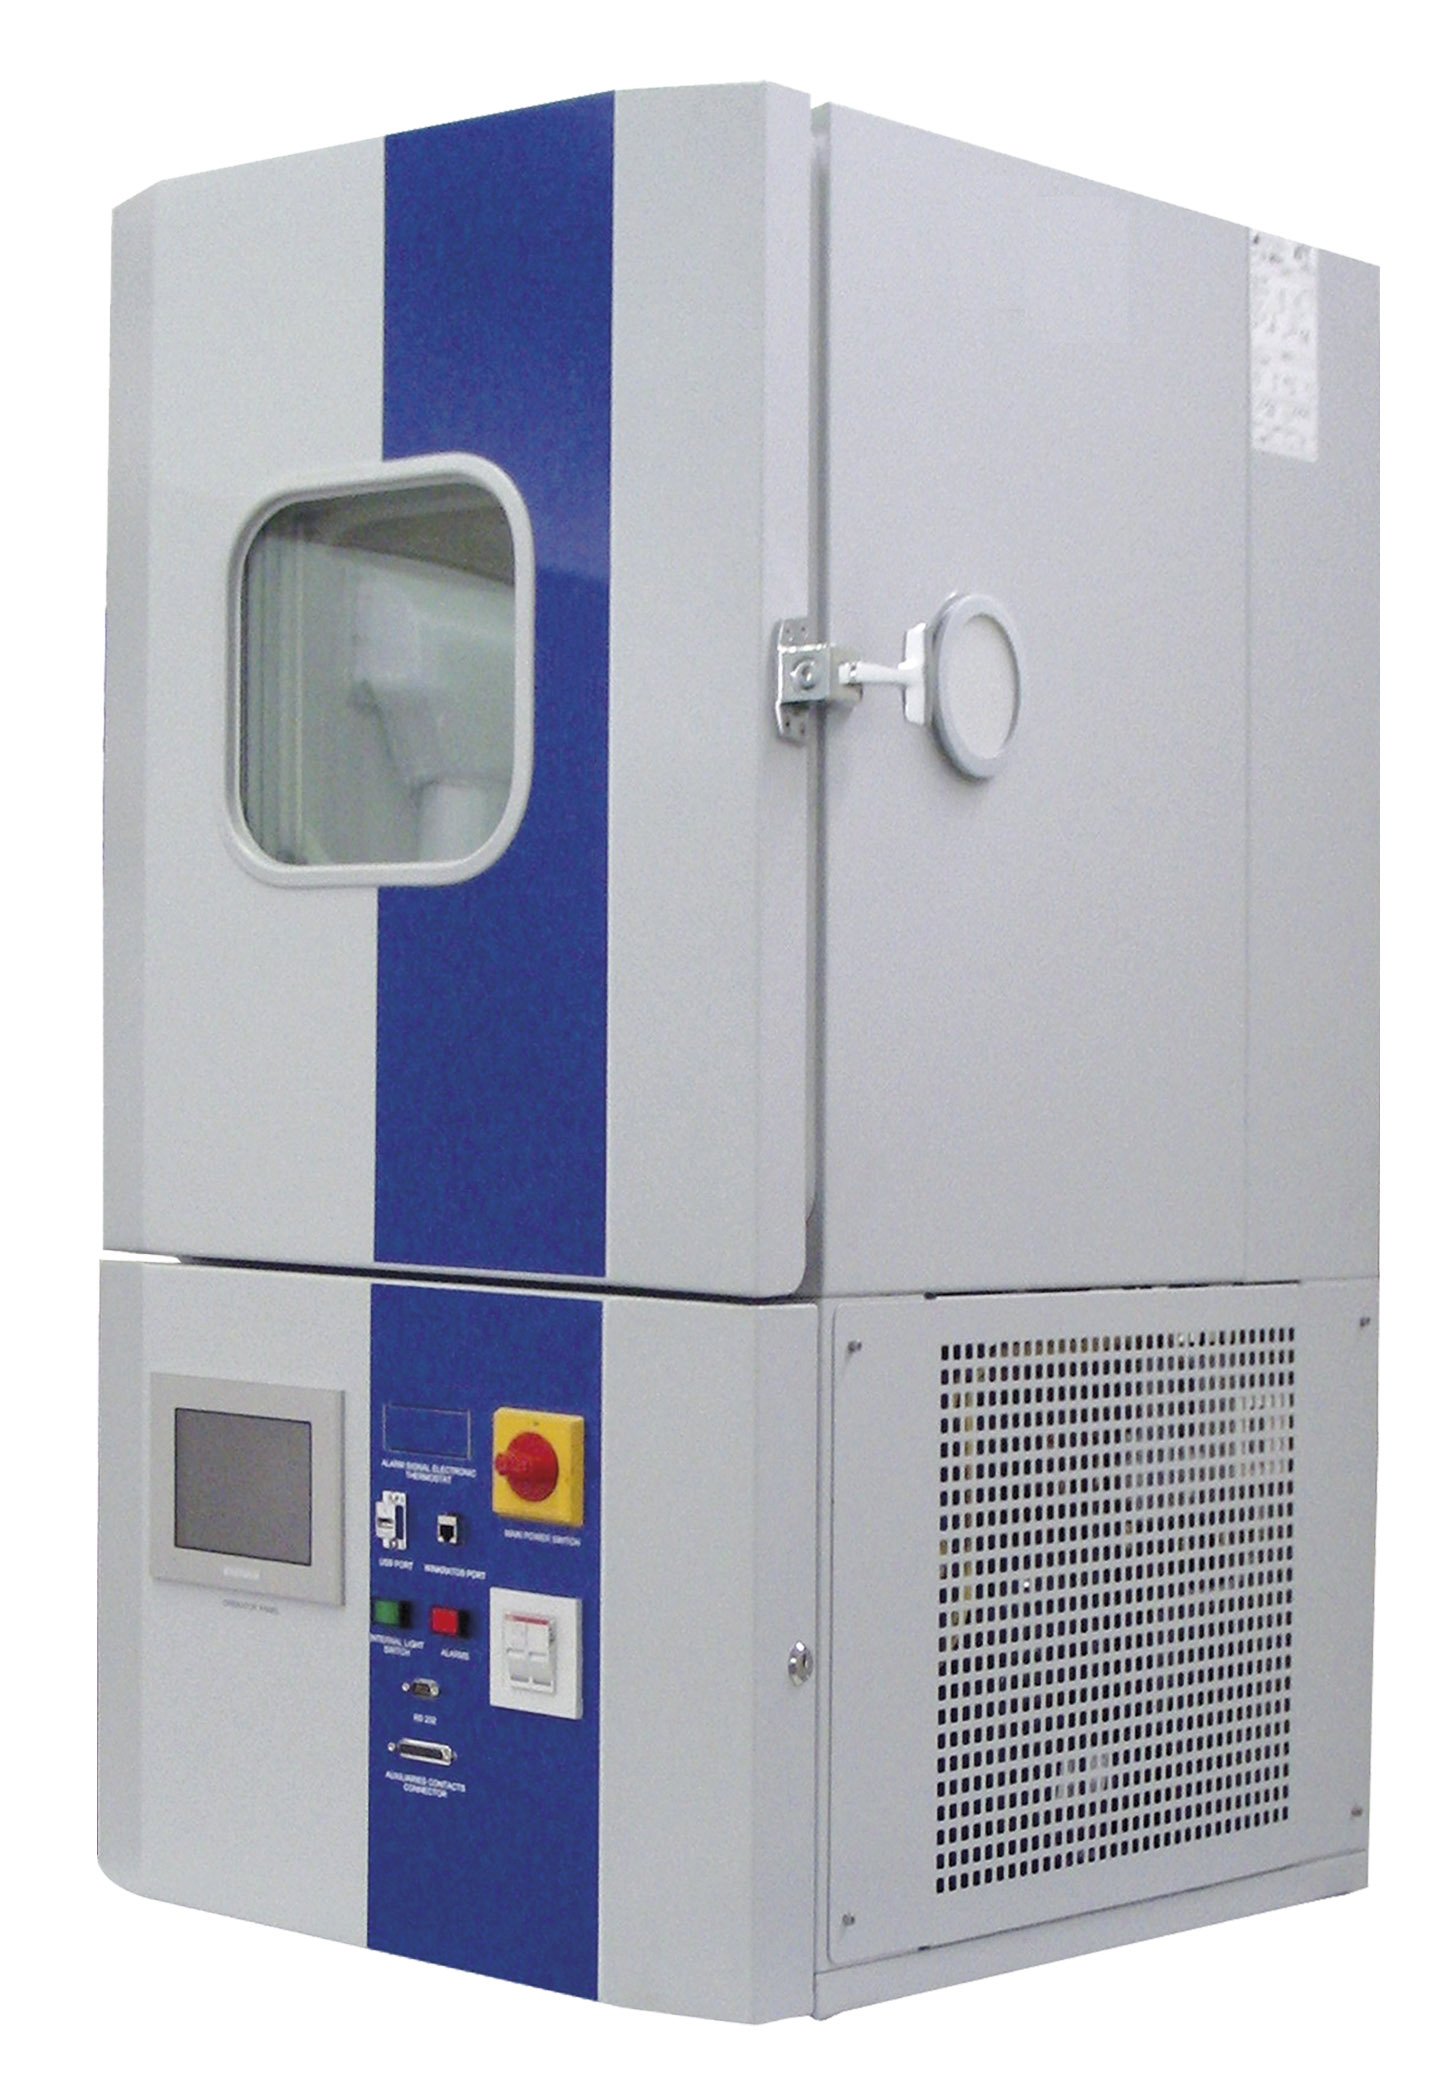 oven size standard for construction lab use